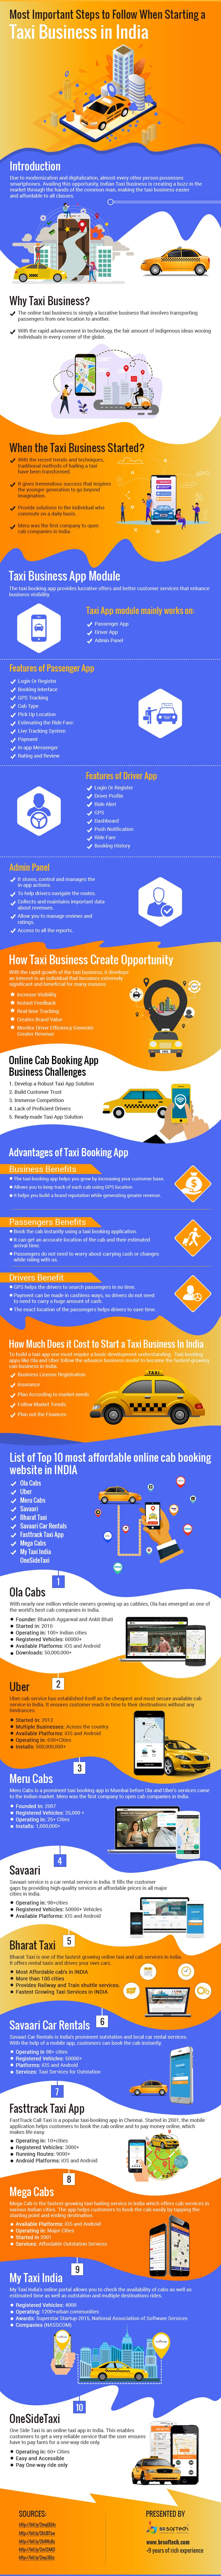 Steps to Follow When Starting a Taxi Business in India